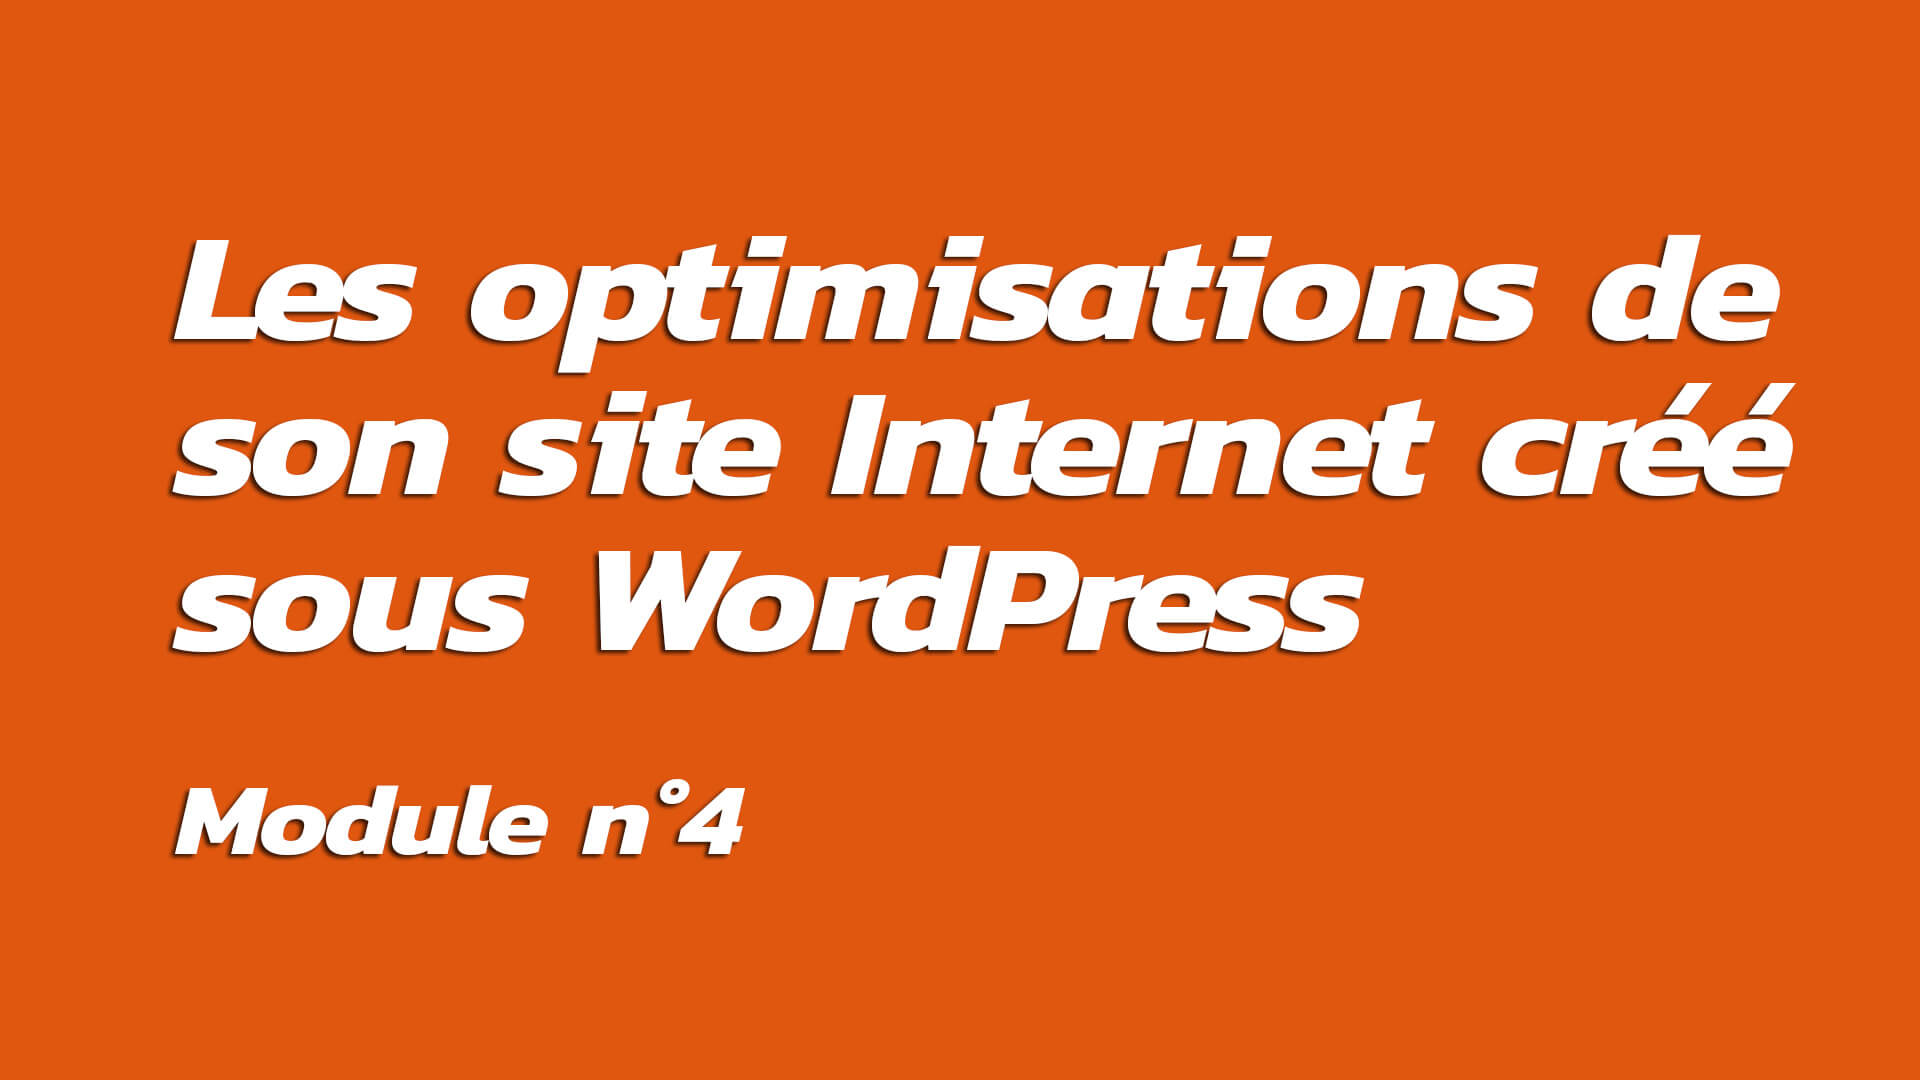 Formation : Optimiser son site Internet créé sous WordPress